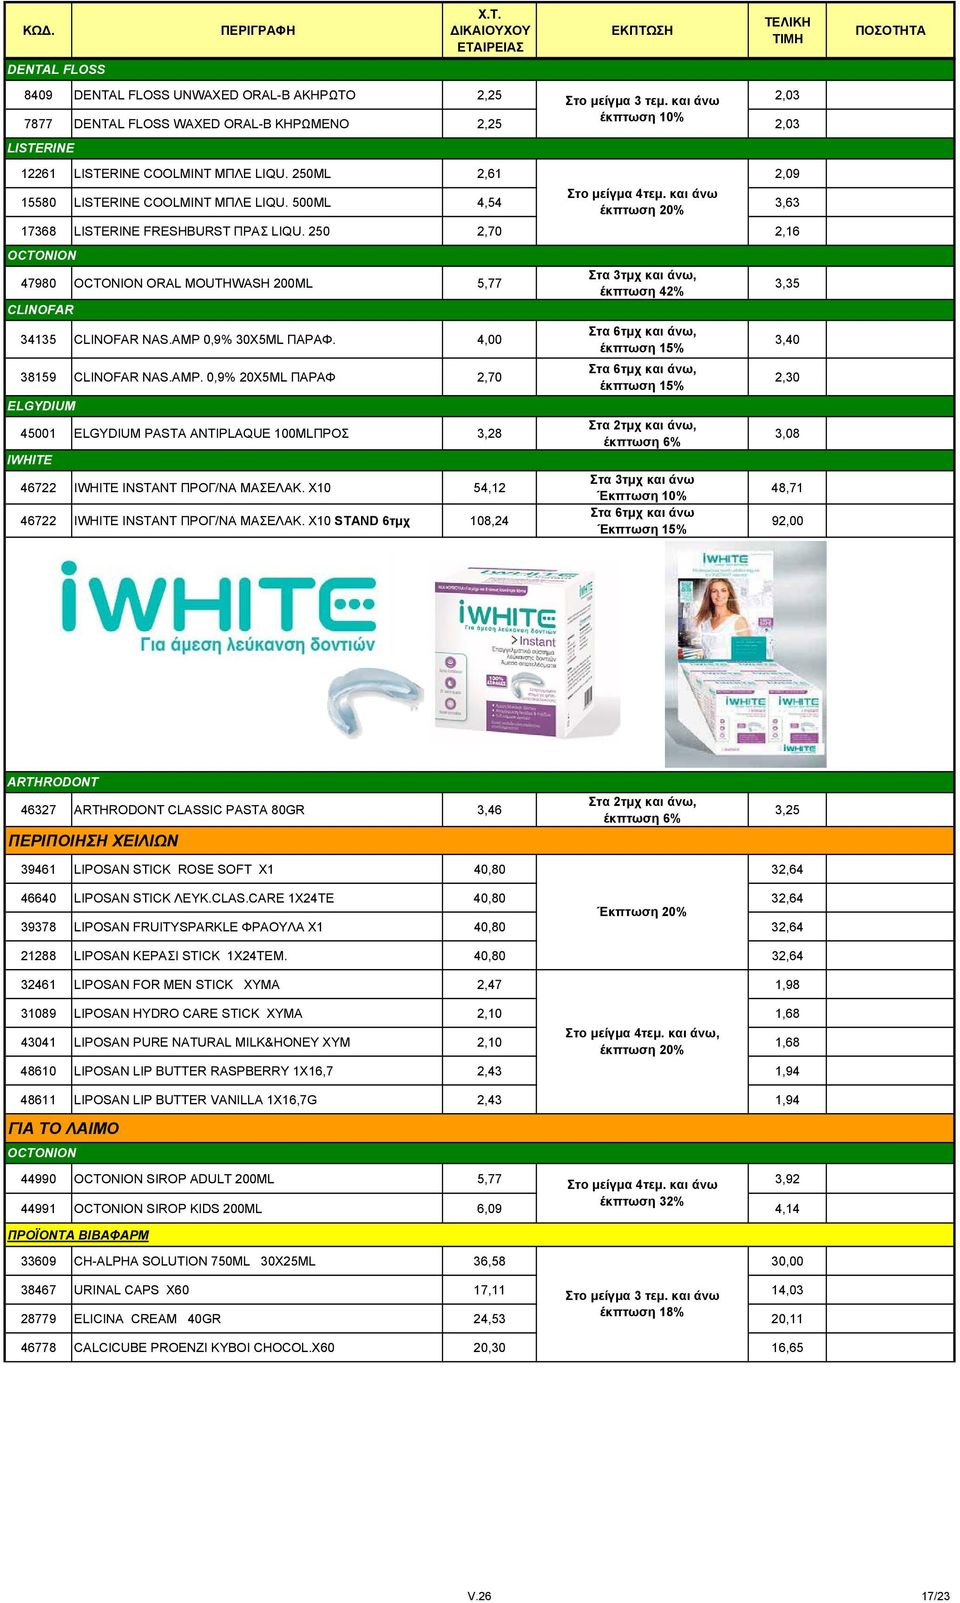 250 2,70 2,16 OCTONION 47980 OCTONION ORAL MOUTHWASH 200ML 5,77 CLINOFAR 34135 CLINOFAR NAS.AMP